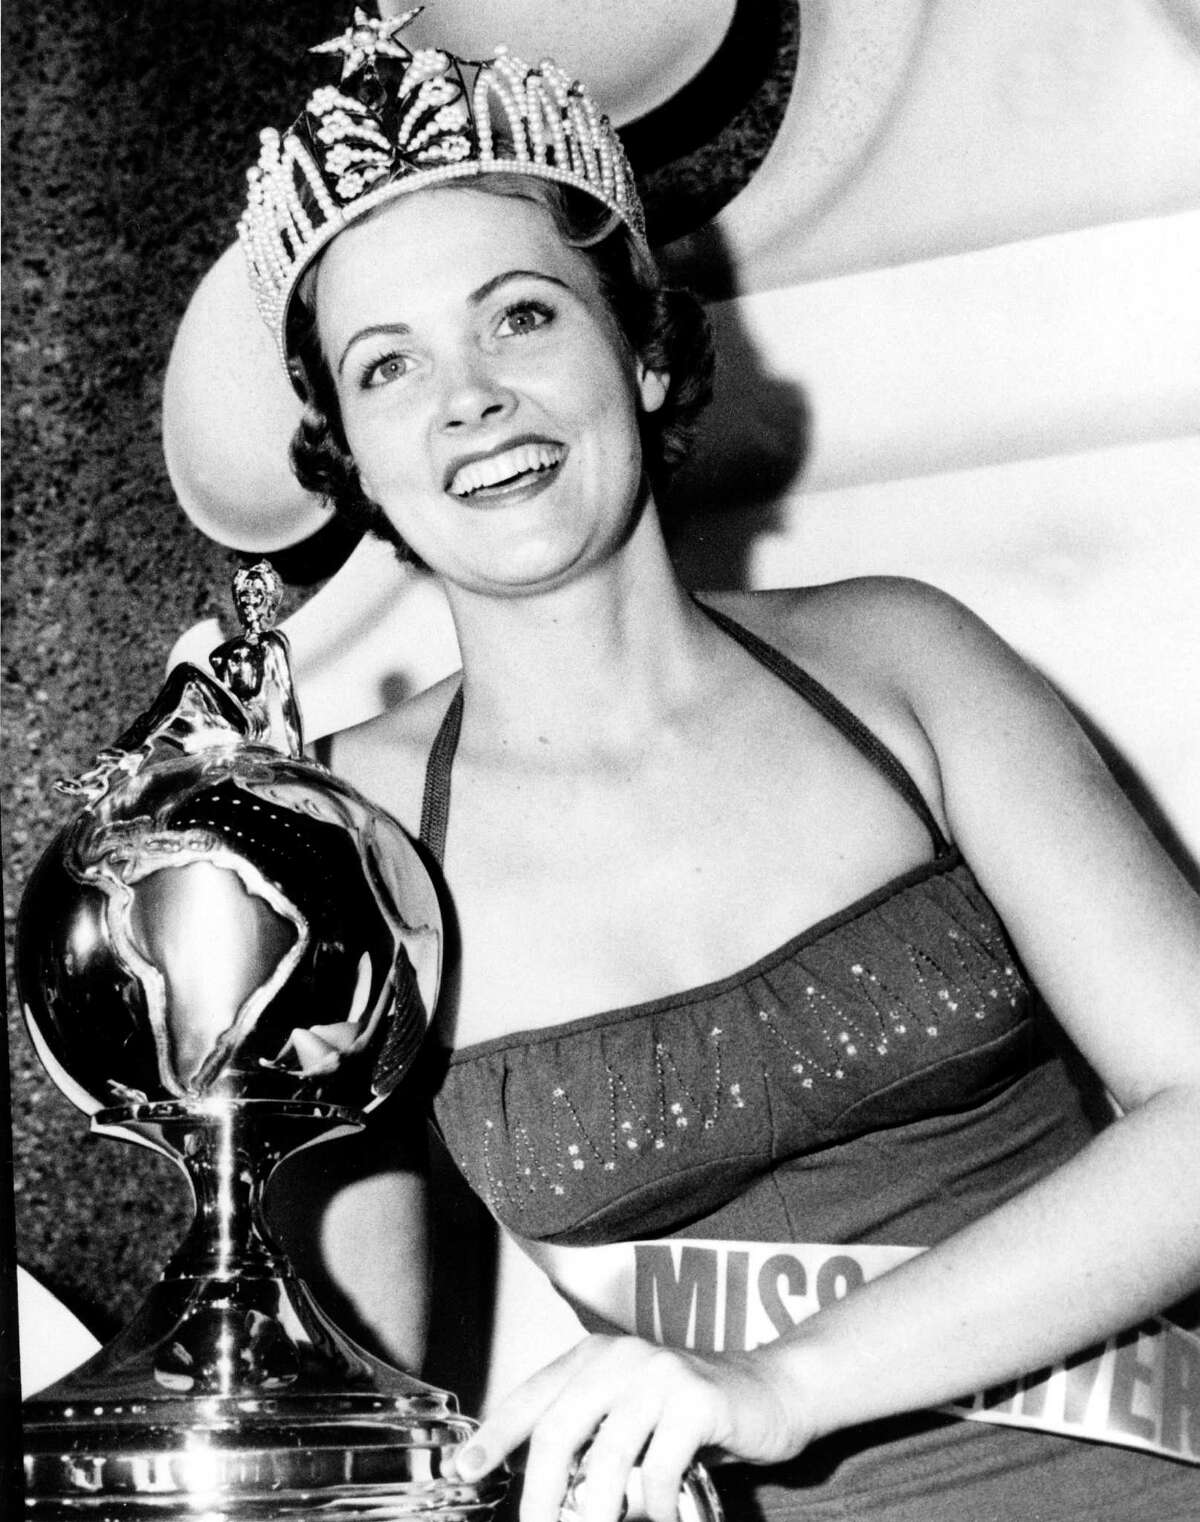 1954: Miriam Stevenson, Miss USA 1954, from South Carolina, was the first Miss USA to become Miss Universe.